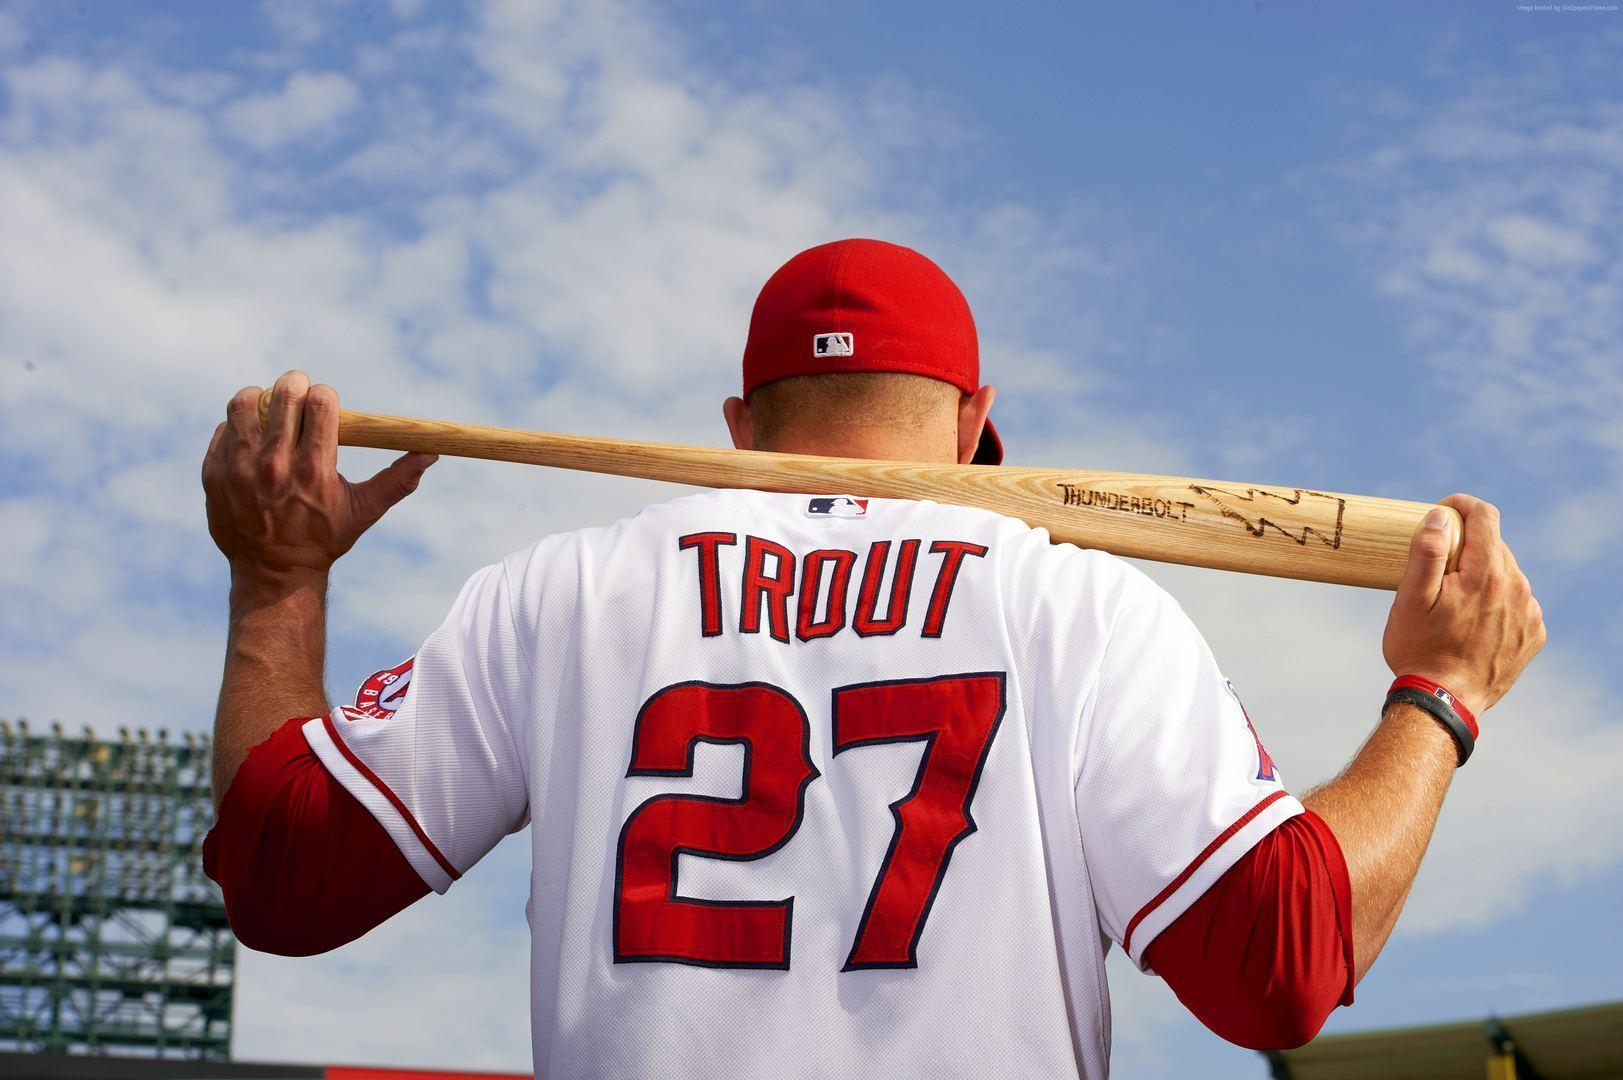 Mike Trout wallpapers hd free download